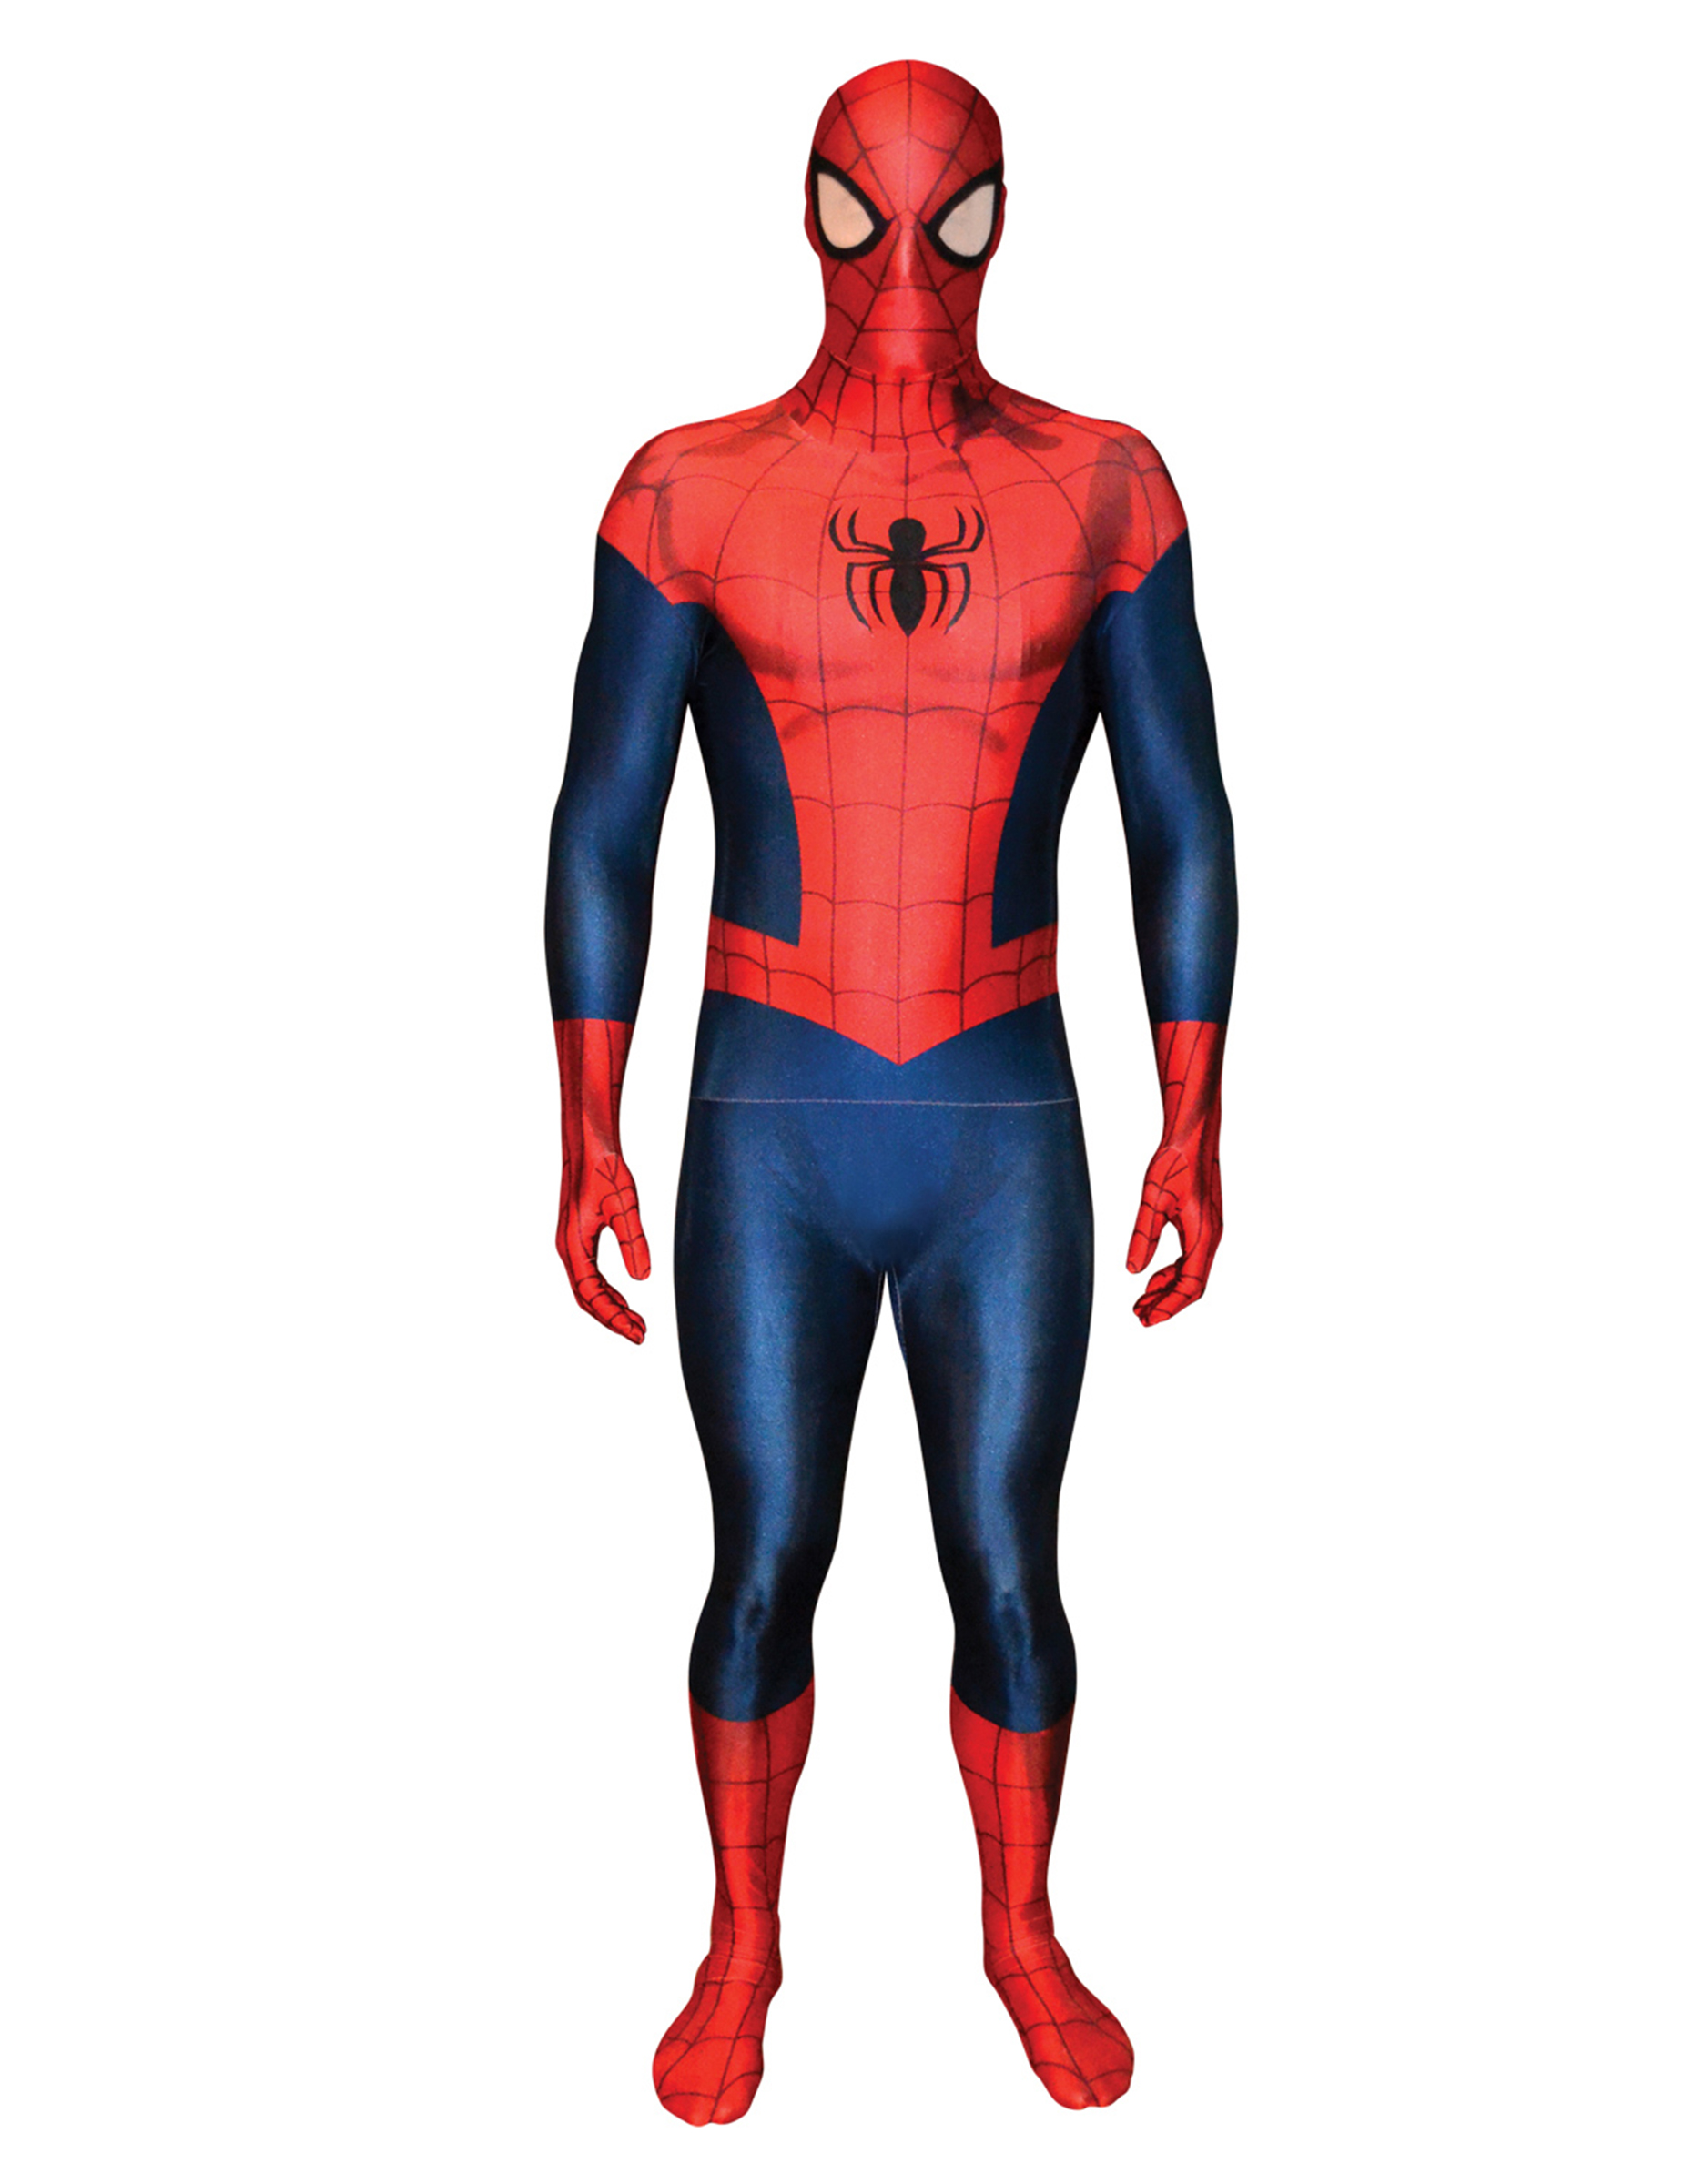 D guisement spiderman adulte morphsuits deguise toi - Image spiderman ...